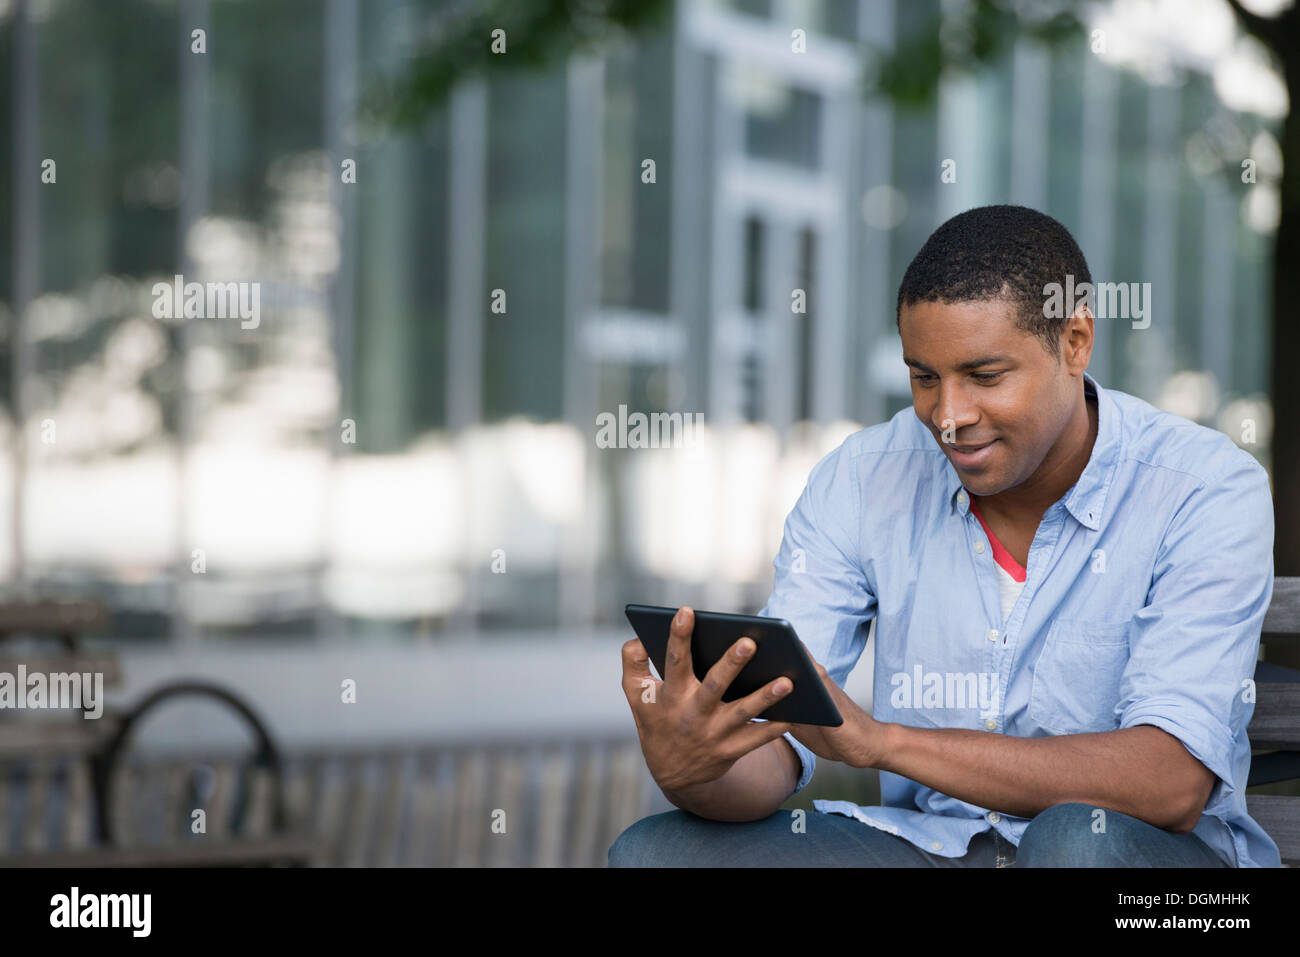 Summer in the city. People outdoors, keeping in touch while on the move. A man sitting on a bench using a digital tablet. - Stock Image